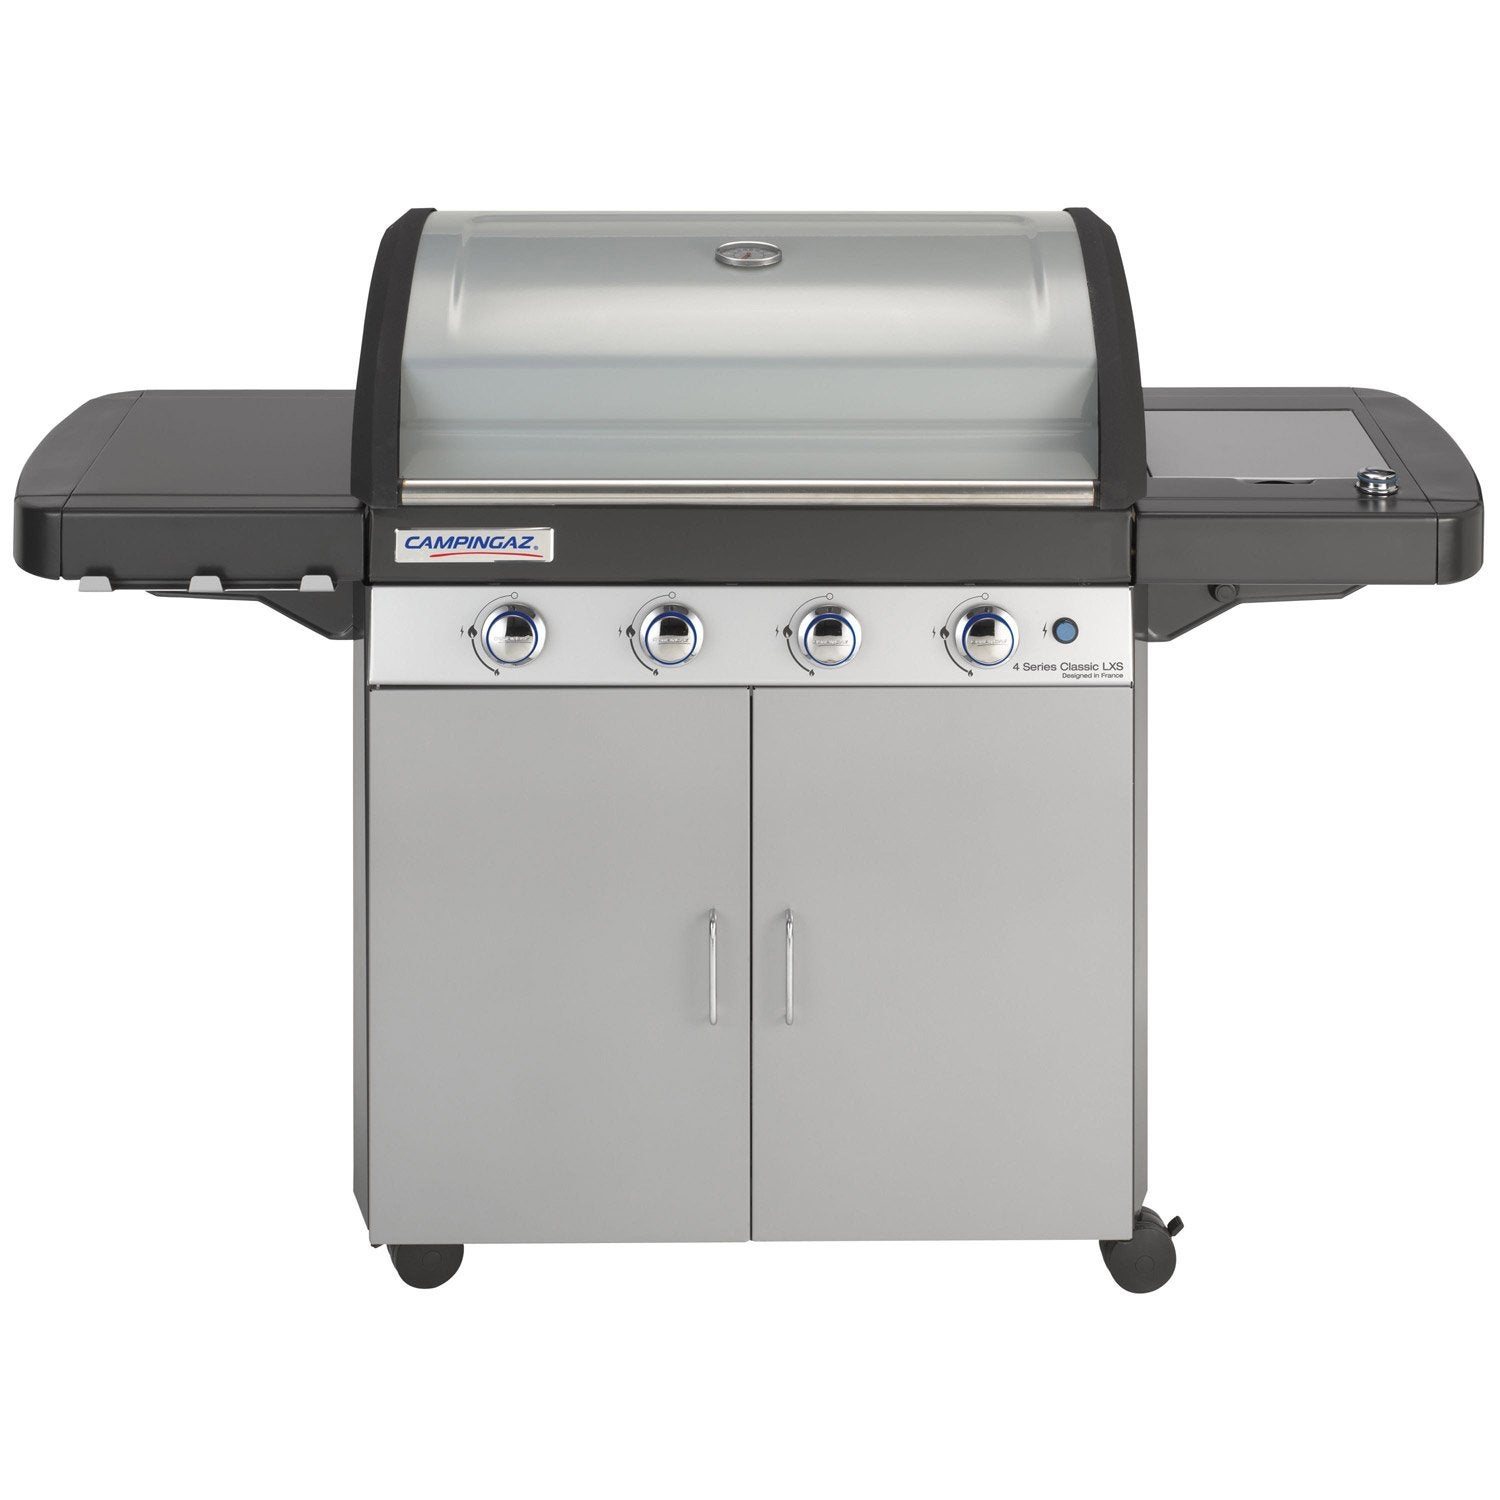 barbecue 4 series classic lxs